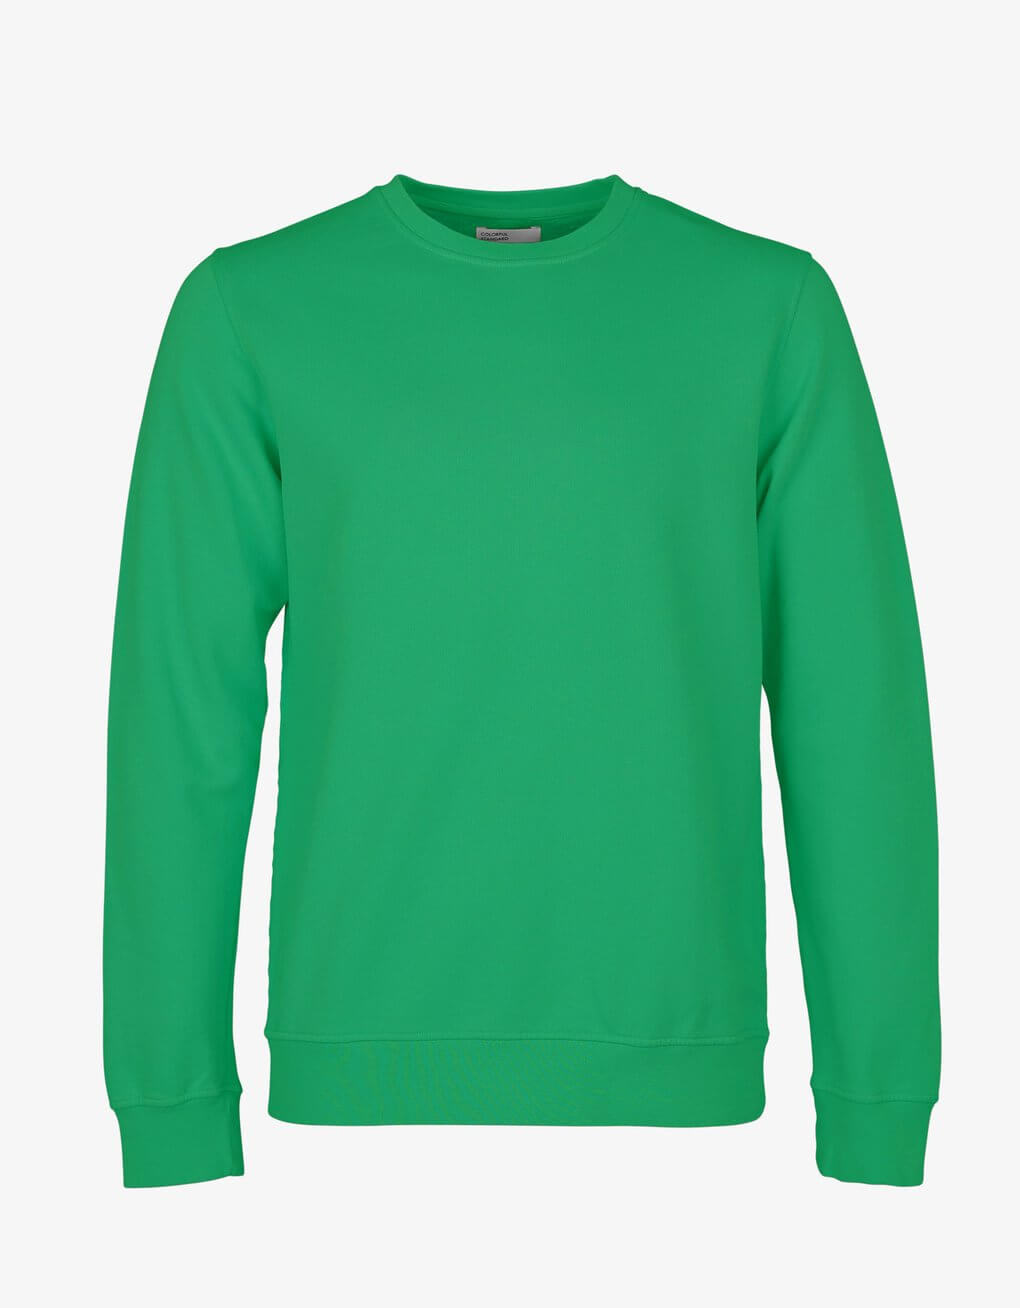 Colorful Standard - Classic Organic Crew - CS1005 - Kelly Green